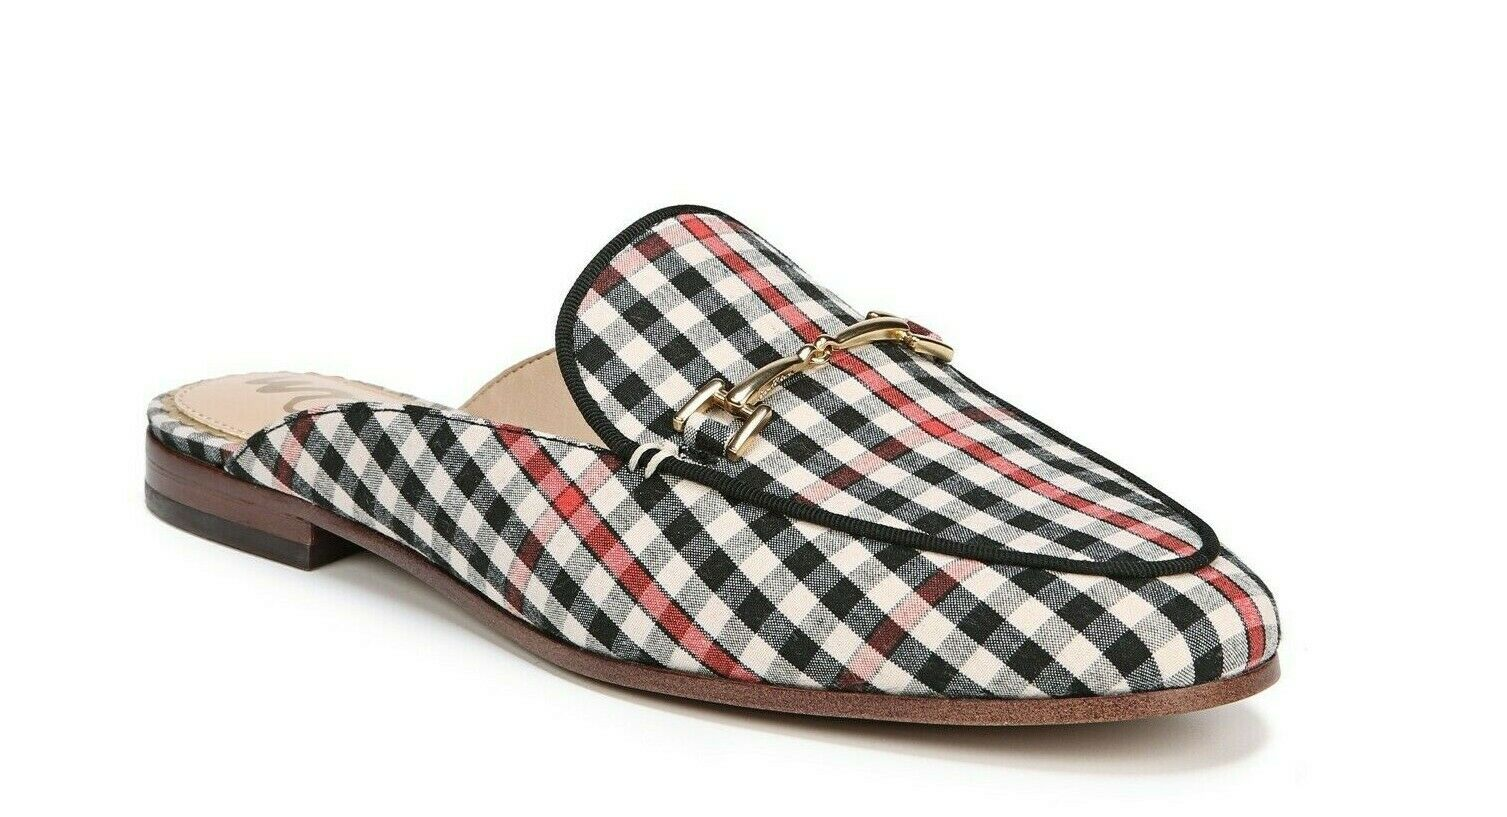 Sam Edelman Linnie Women's Size 8.5M Gingham Multi Fabric Slip-On Flat Mules New